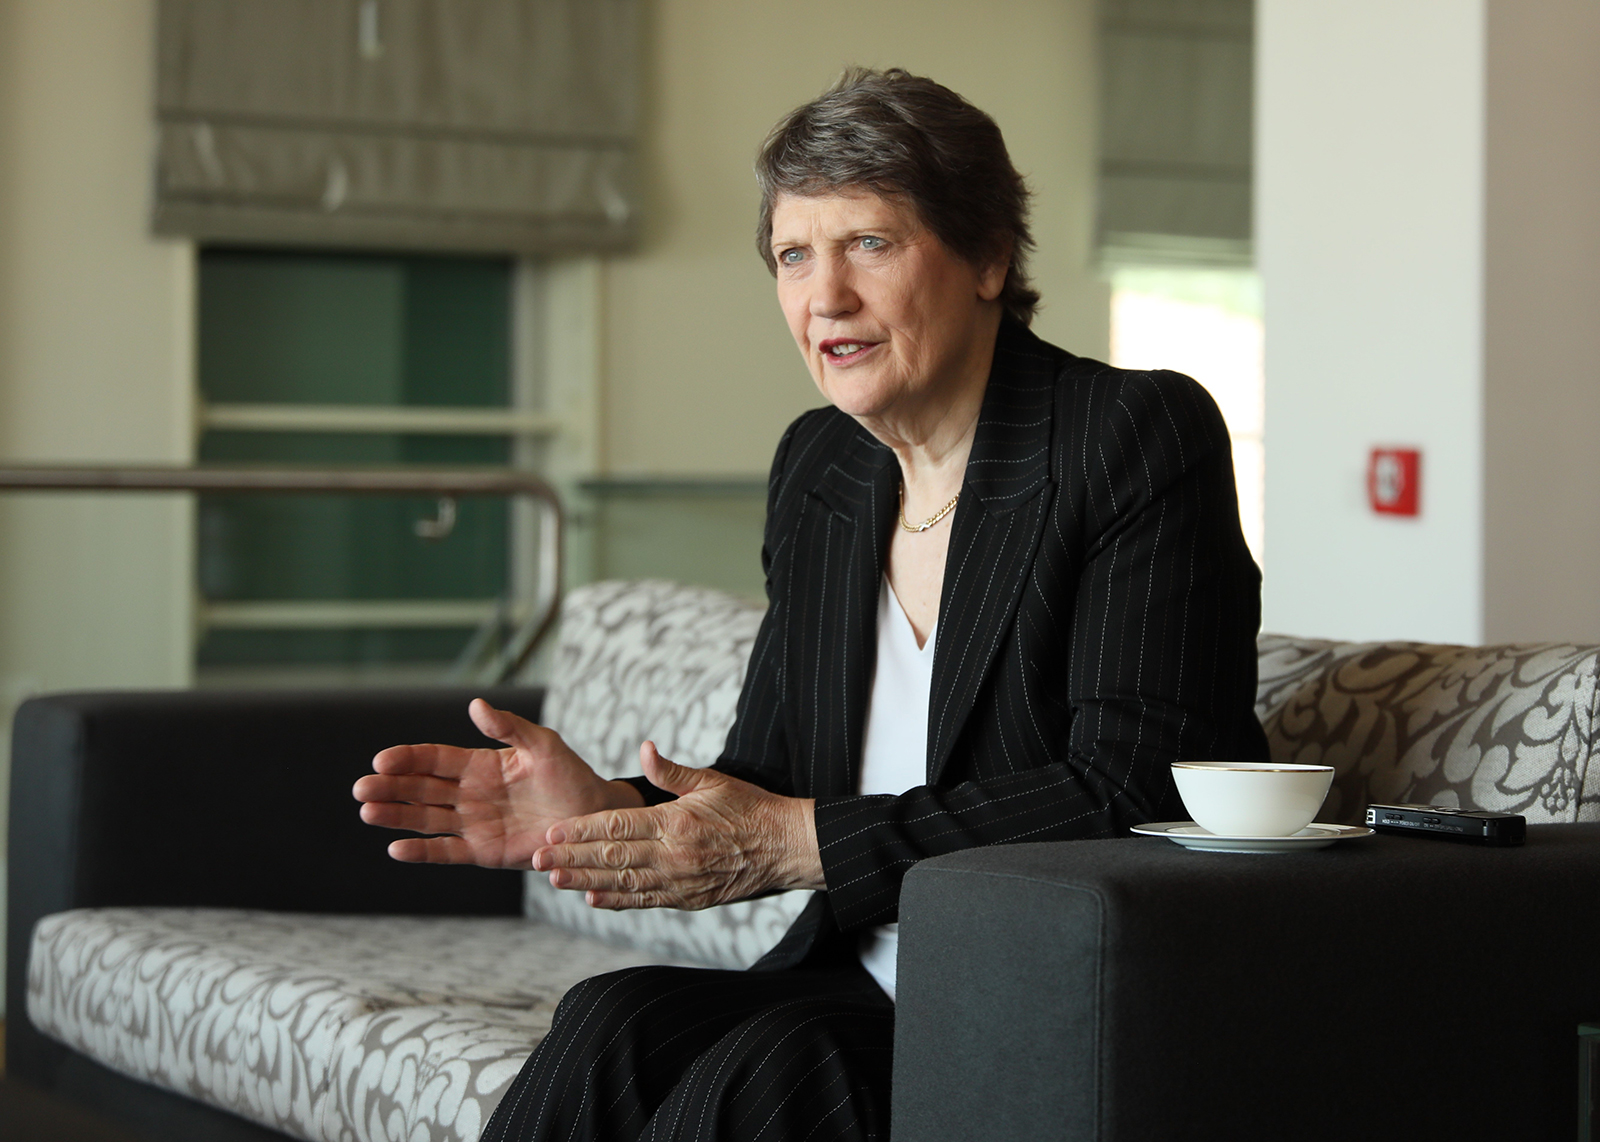 Former Prime Minister of New Zealand, Helen Clark speaks during an exclusive interview in Ankara, on May 16, 2018.